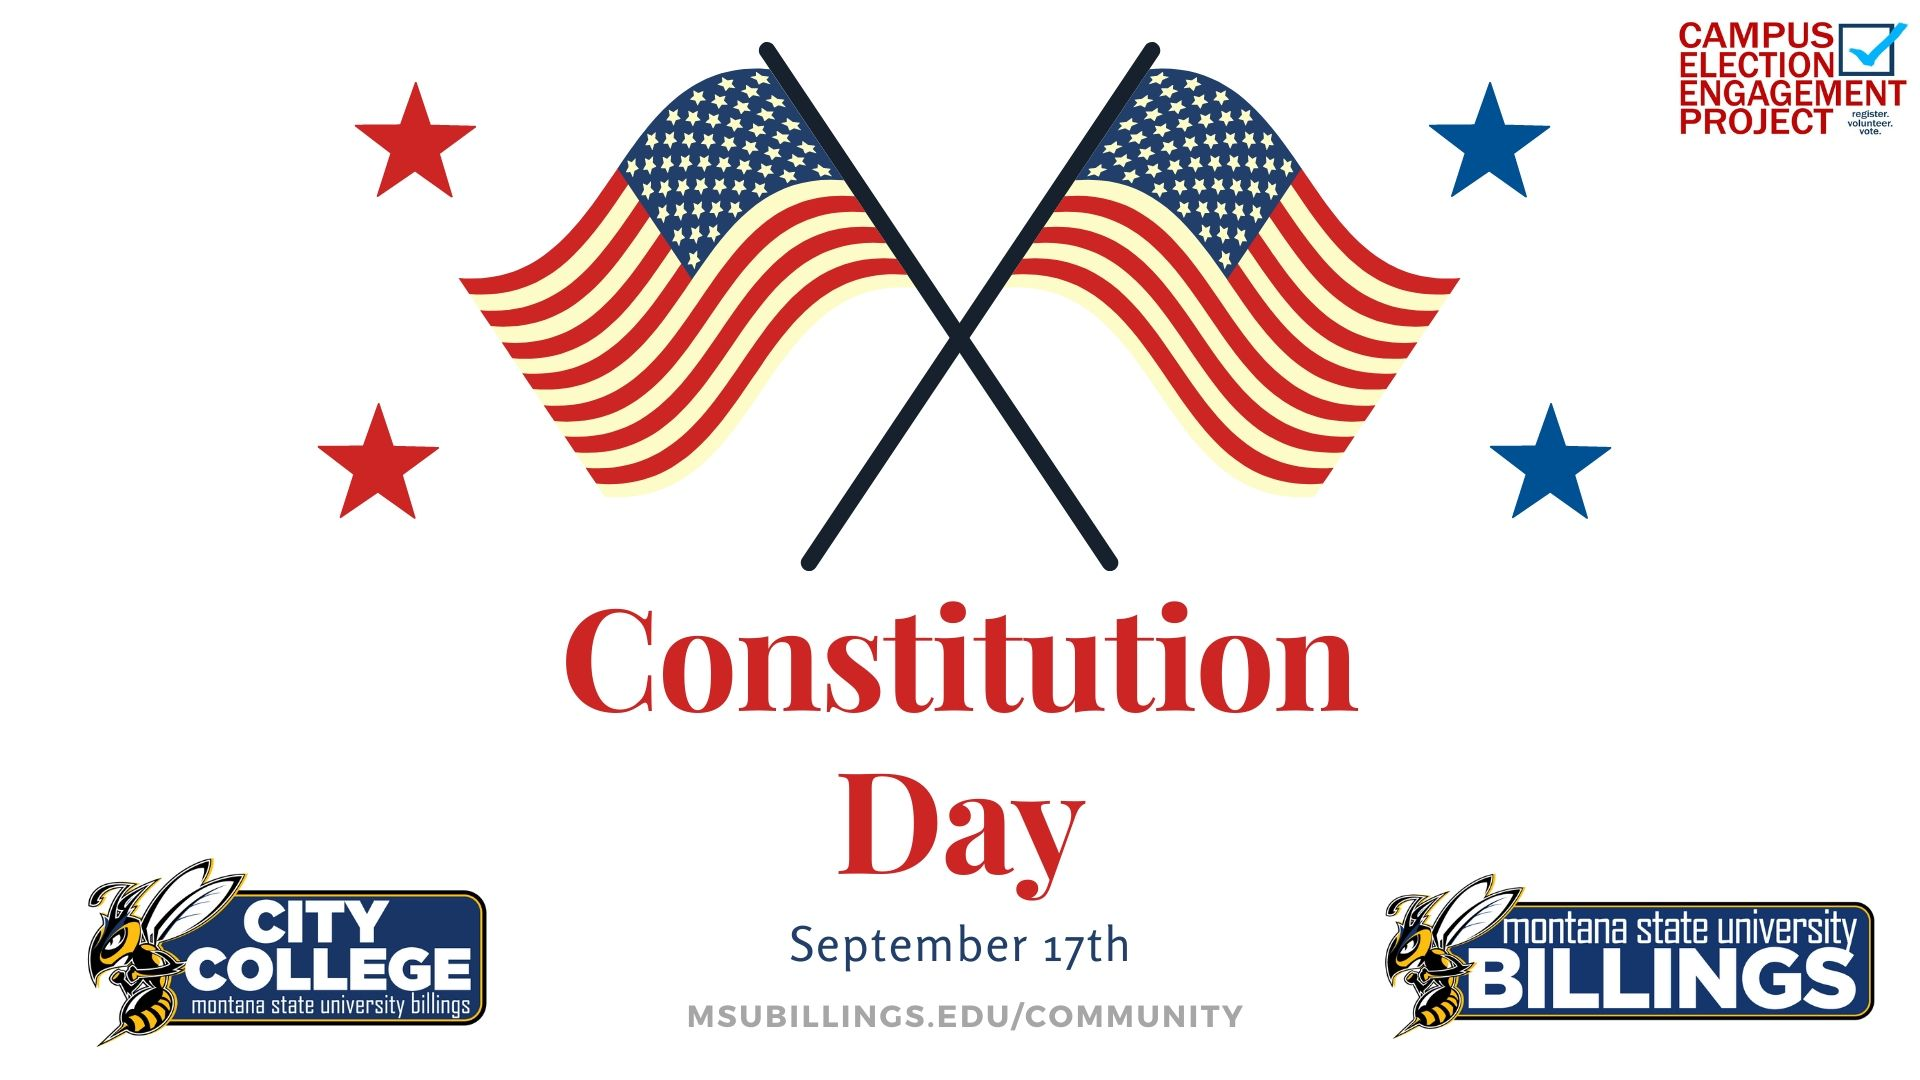 Constitution Day September 17th msubillings.edu/community Campus Election Engagement Project